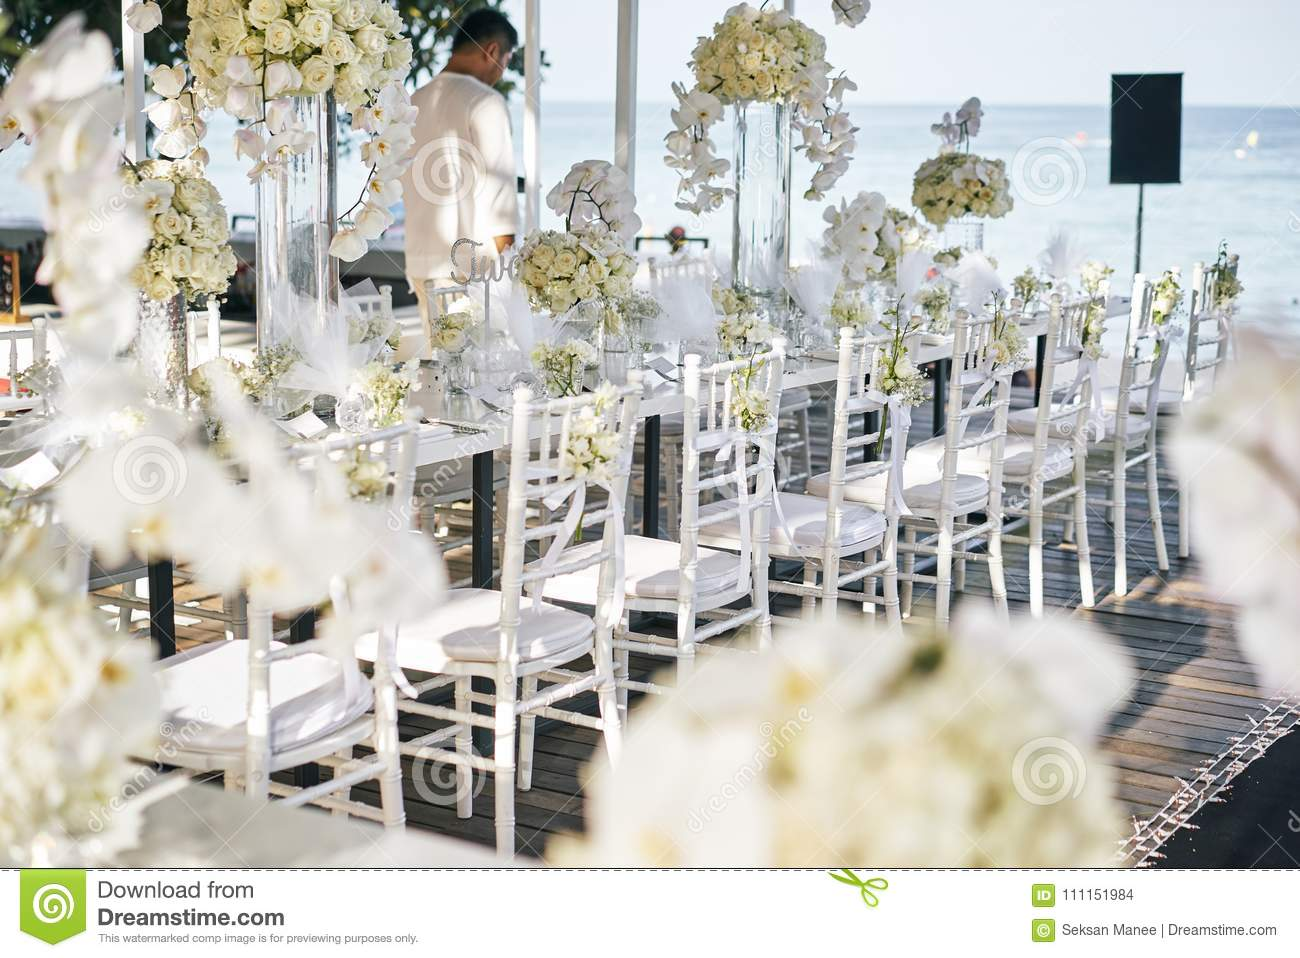 The Wedding Venue For Reception Dinner Table Decorated With White